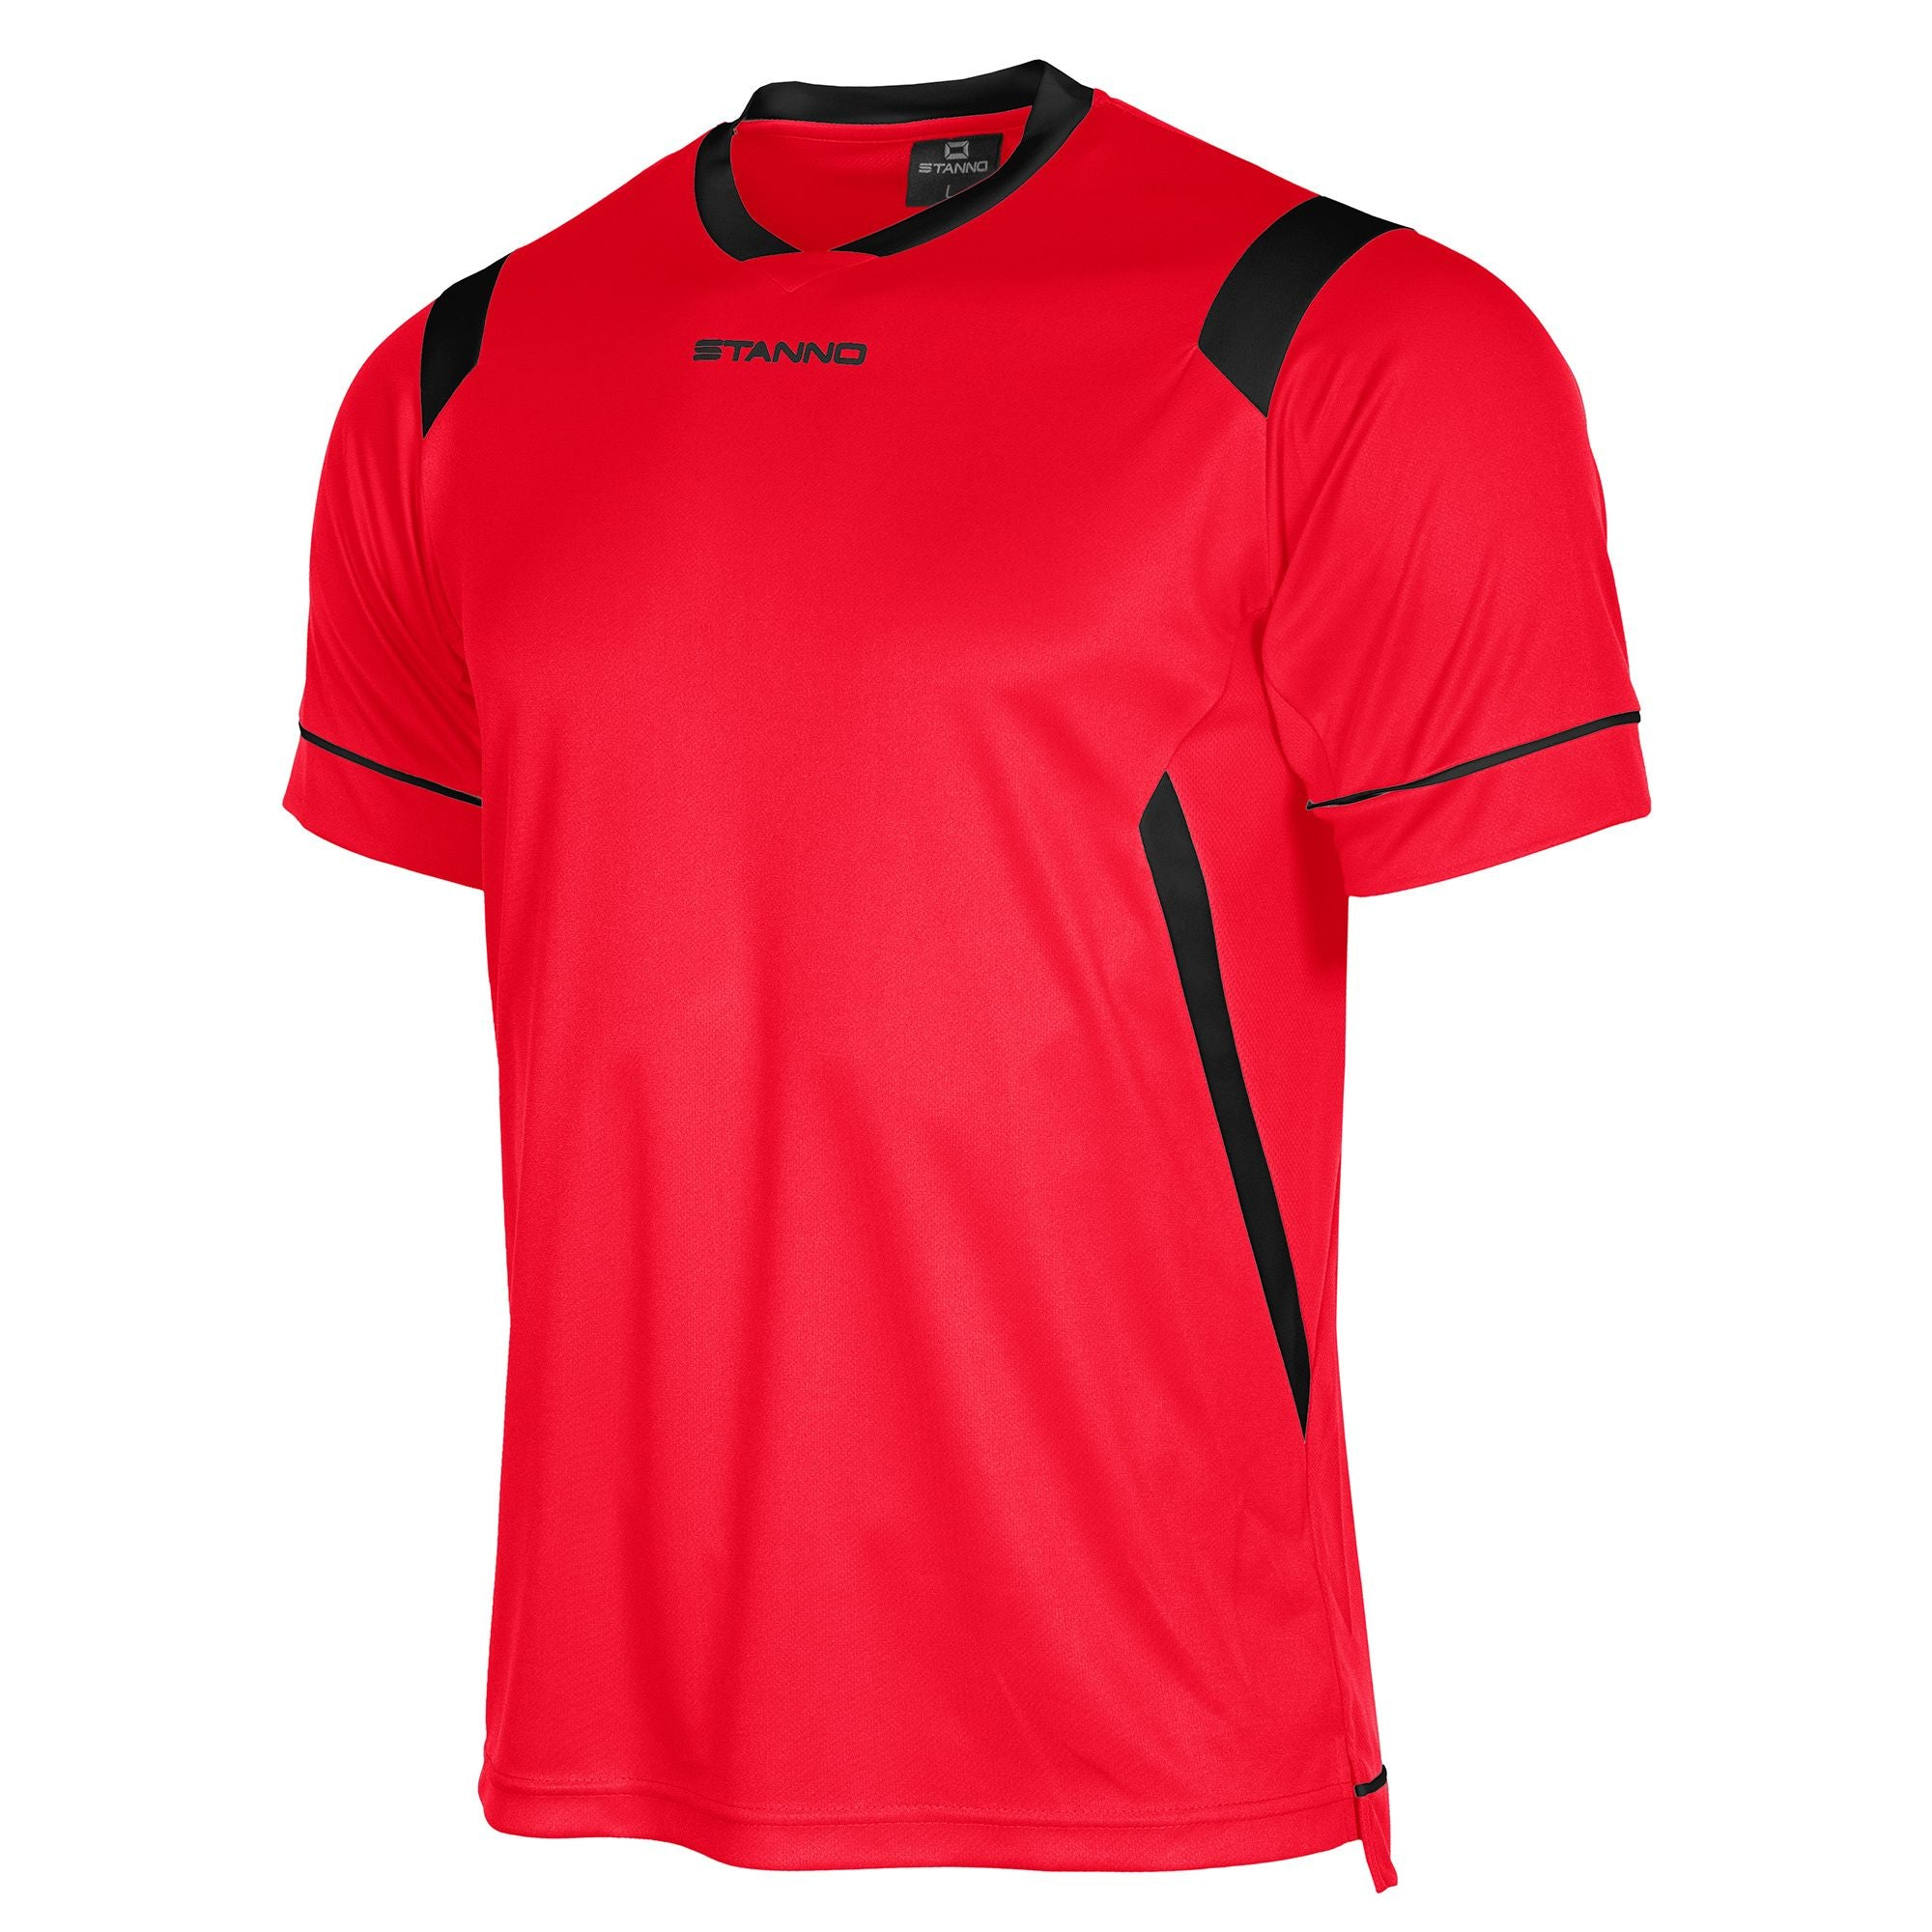 Stanno Arezzo short sleeved shirt in red with black contrast collar, and stripe detail on shoulders and sides.